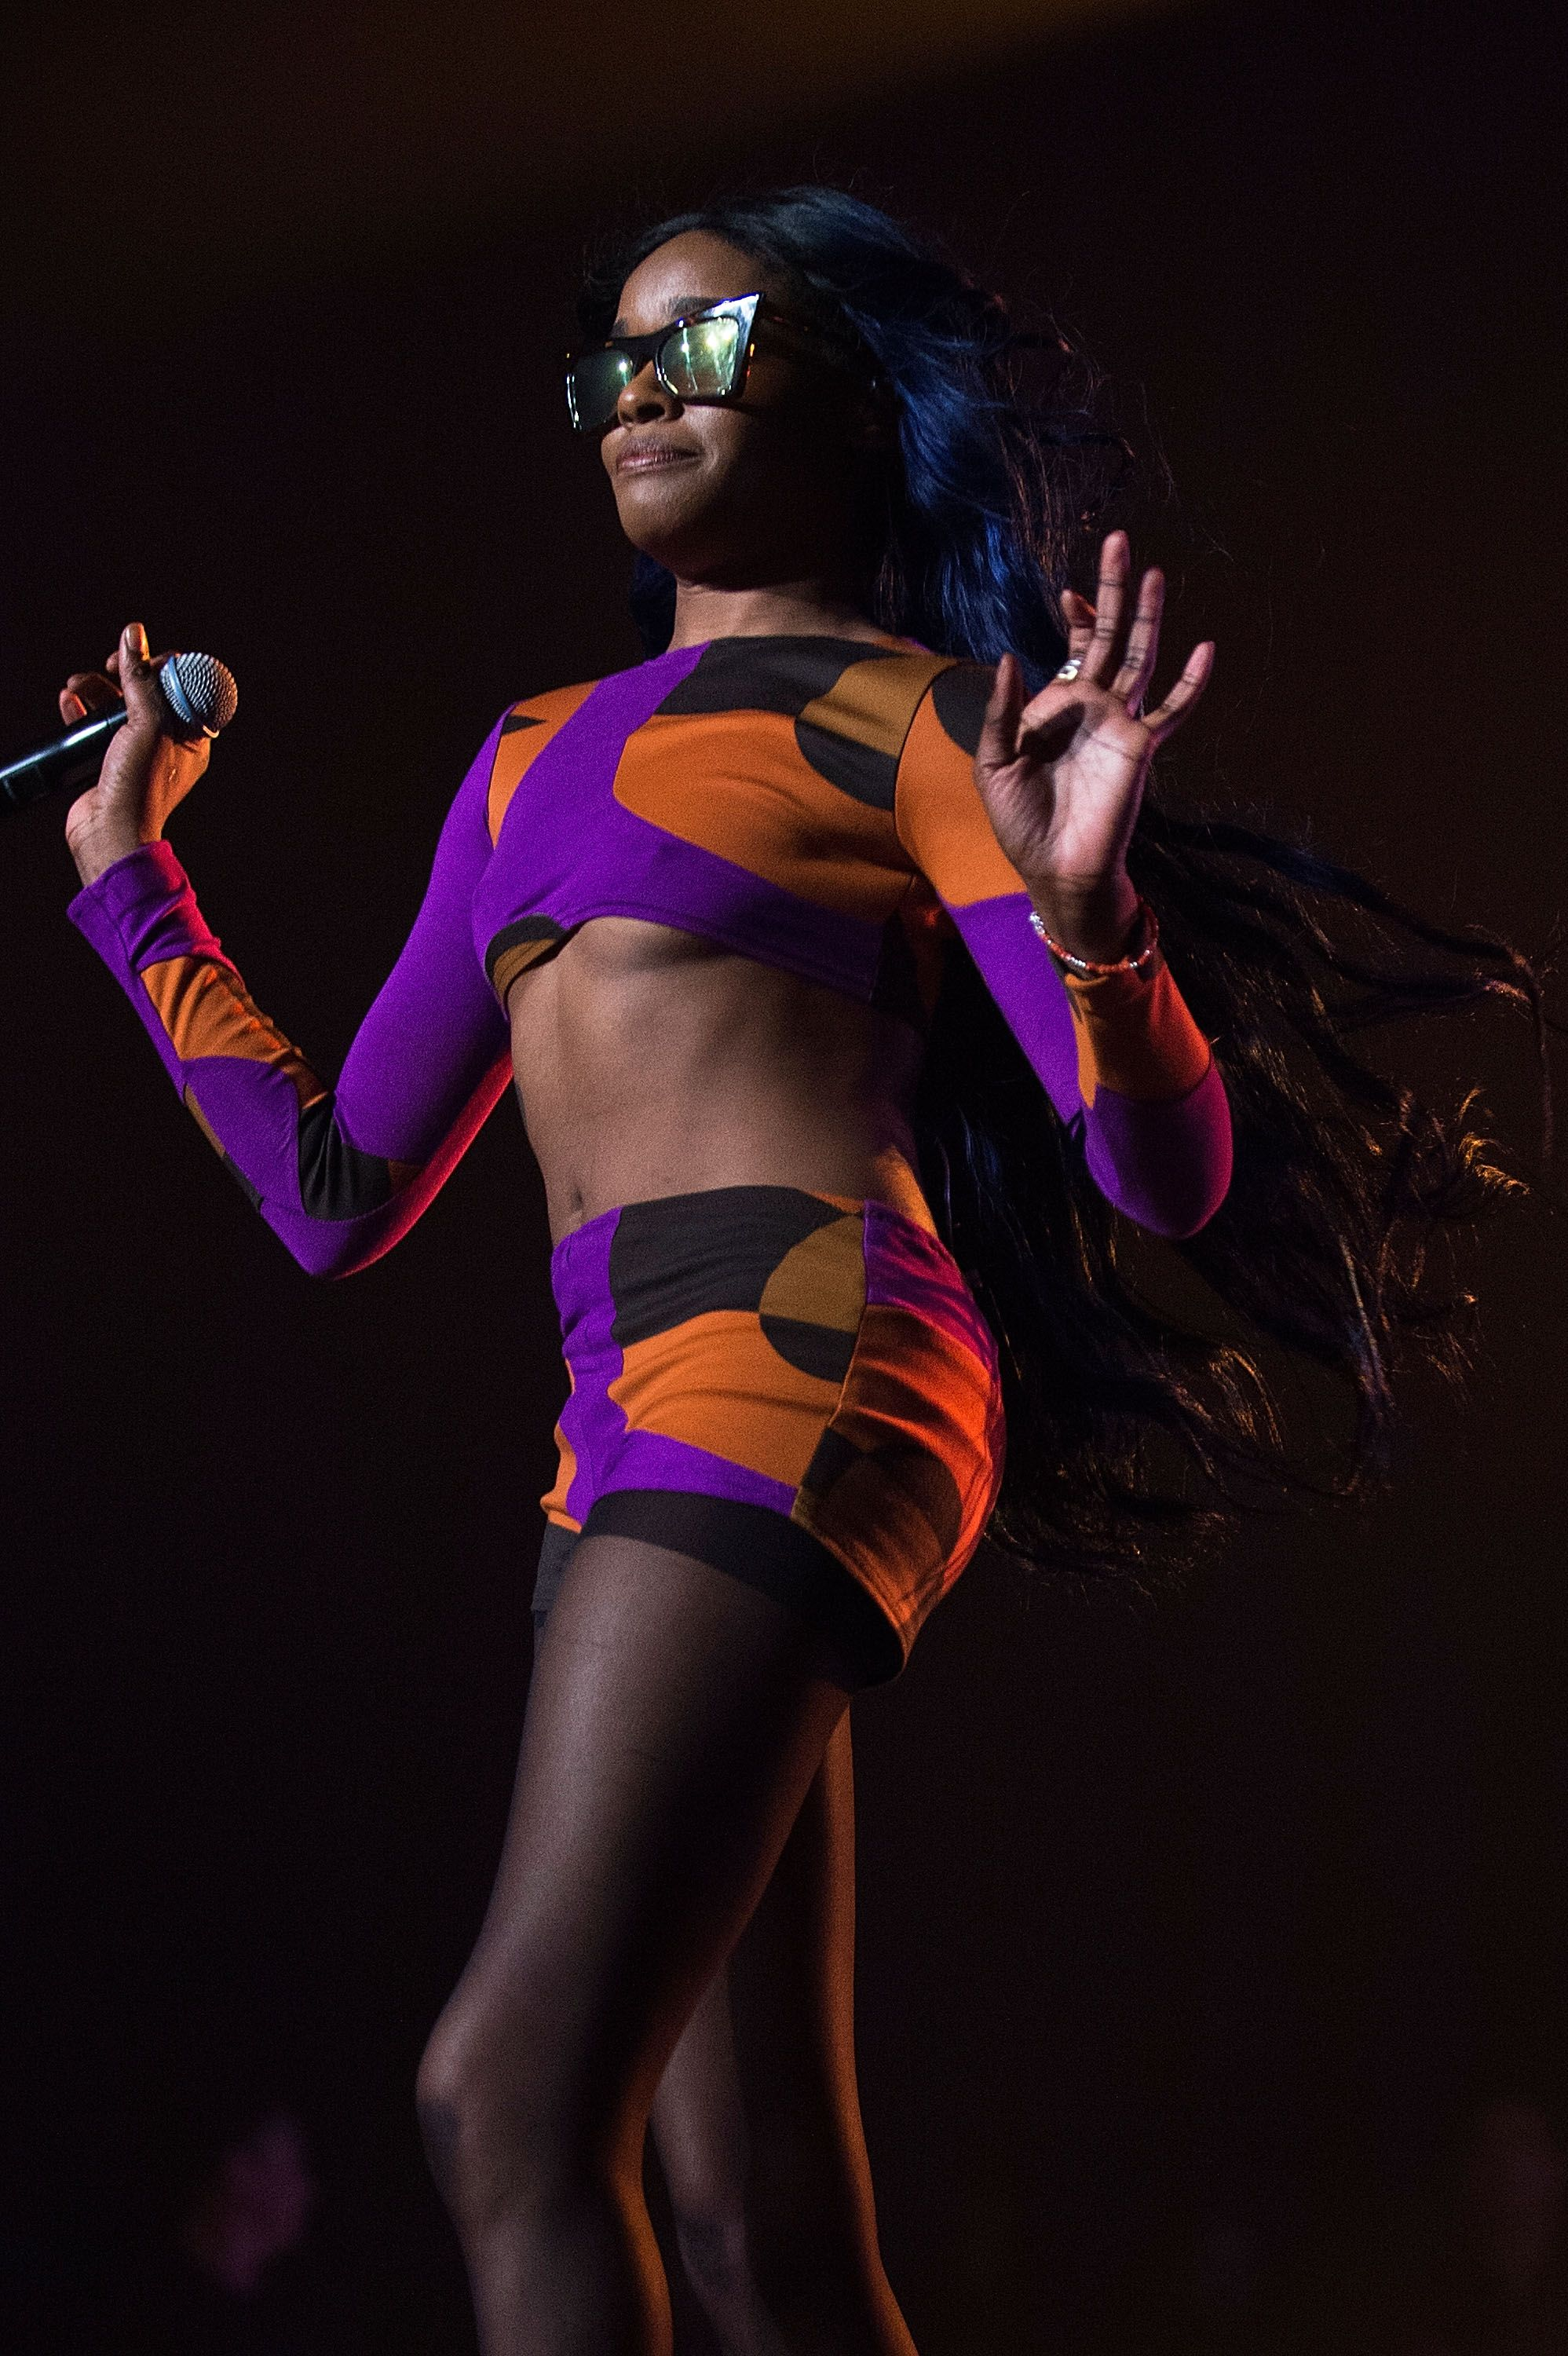 Azealia Banks onstage in New York